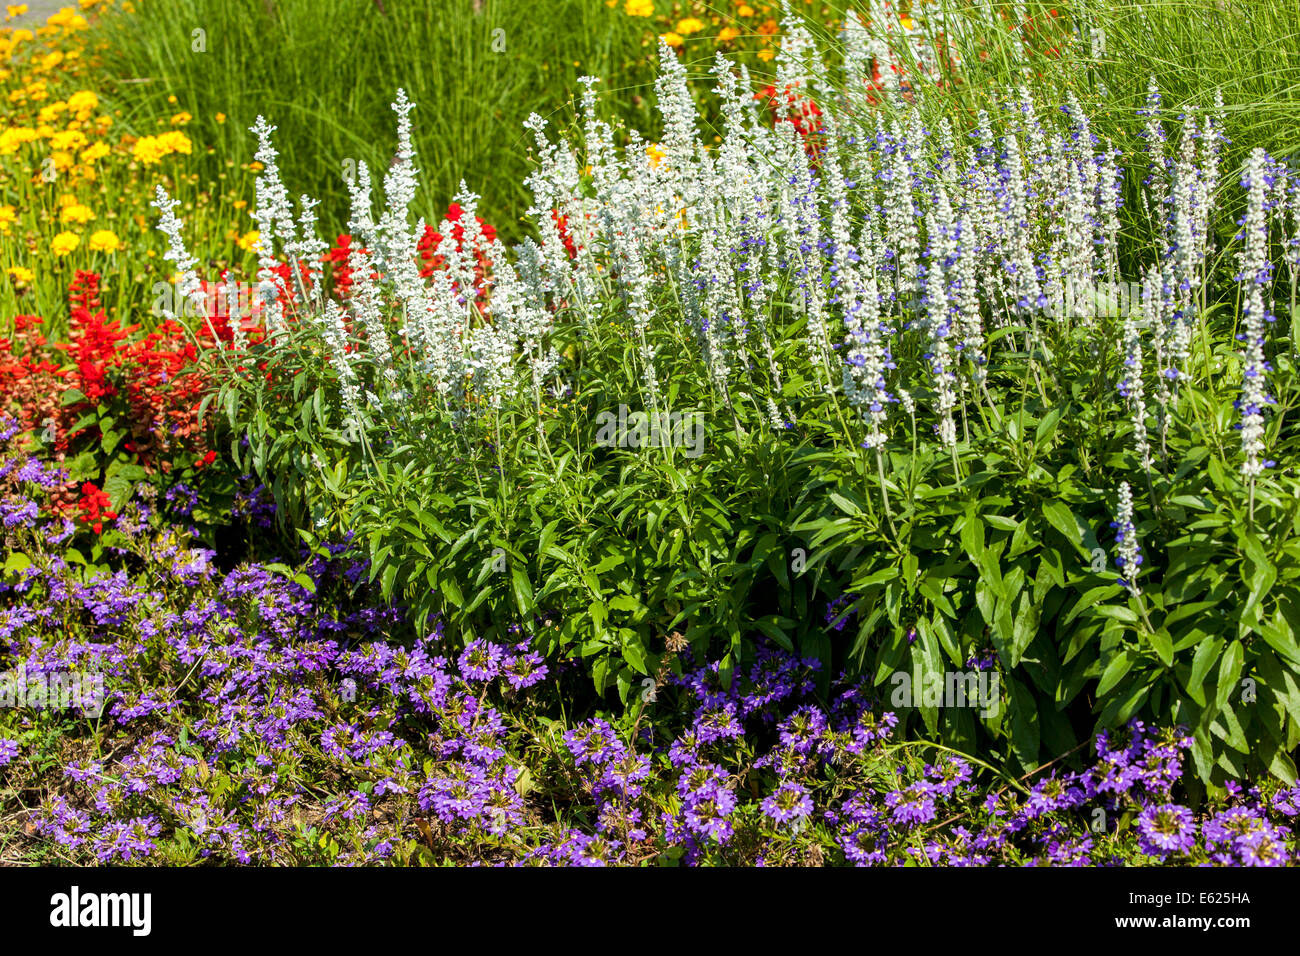 Scaevola flower stock photos scaevola flower stock images alamy colorful flower bed of annual flowers salvia scaevola stock image izmirmasajfo